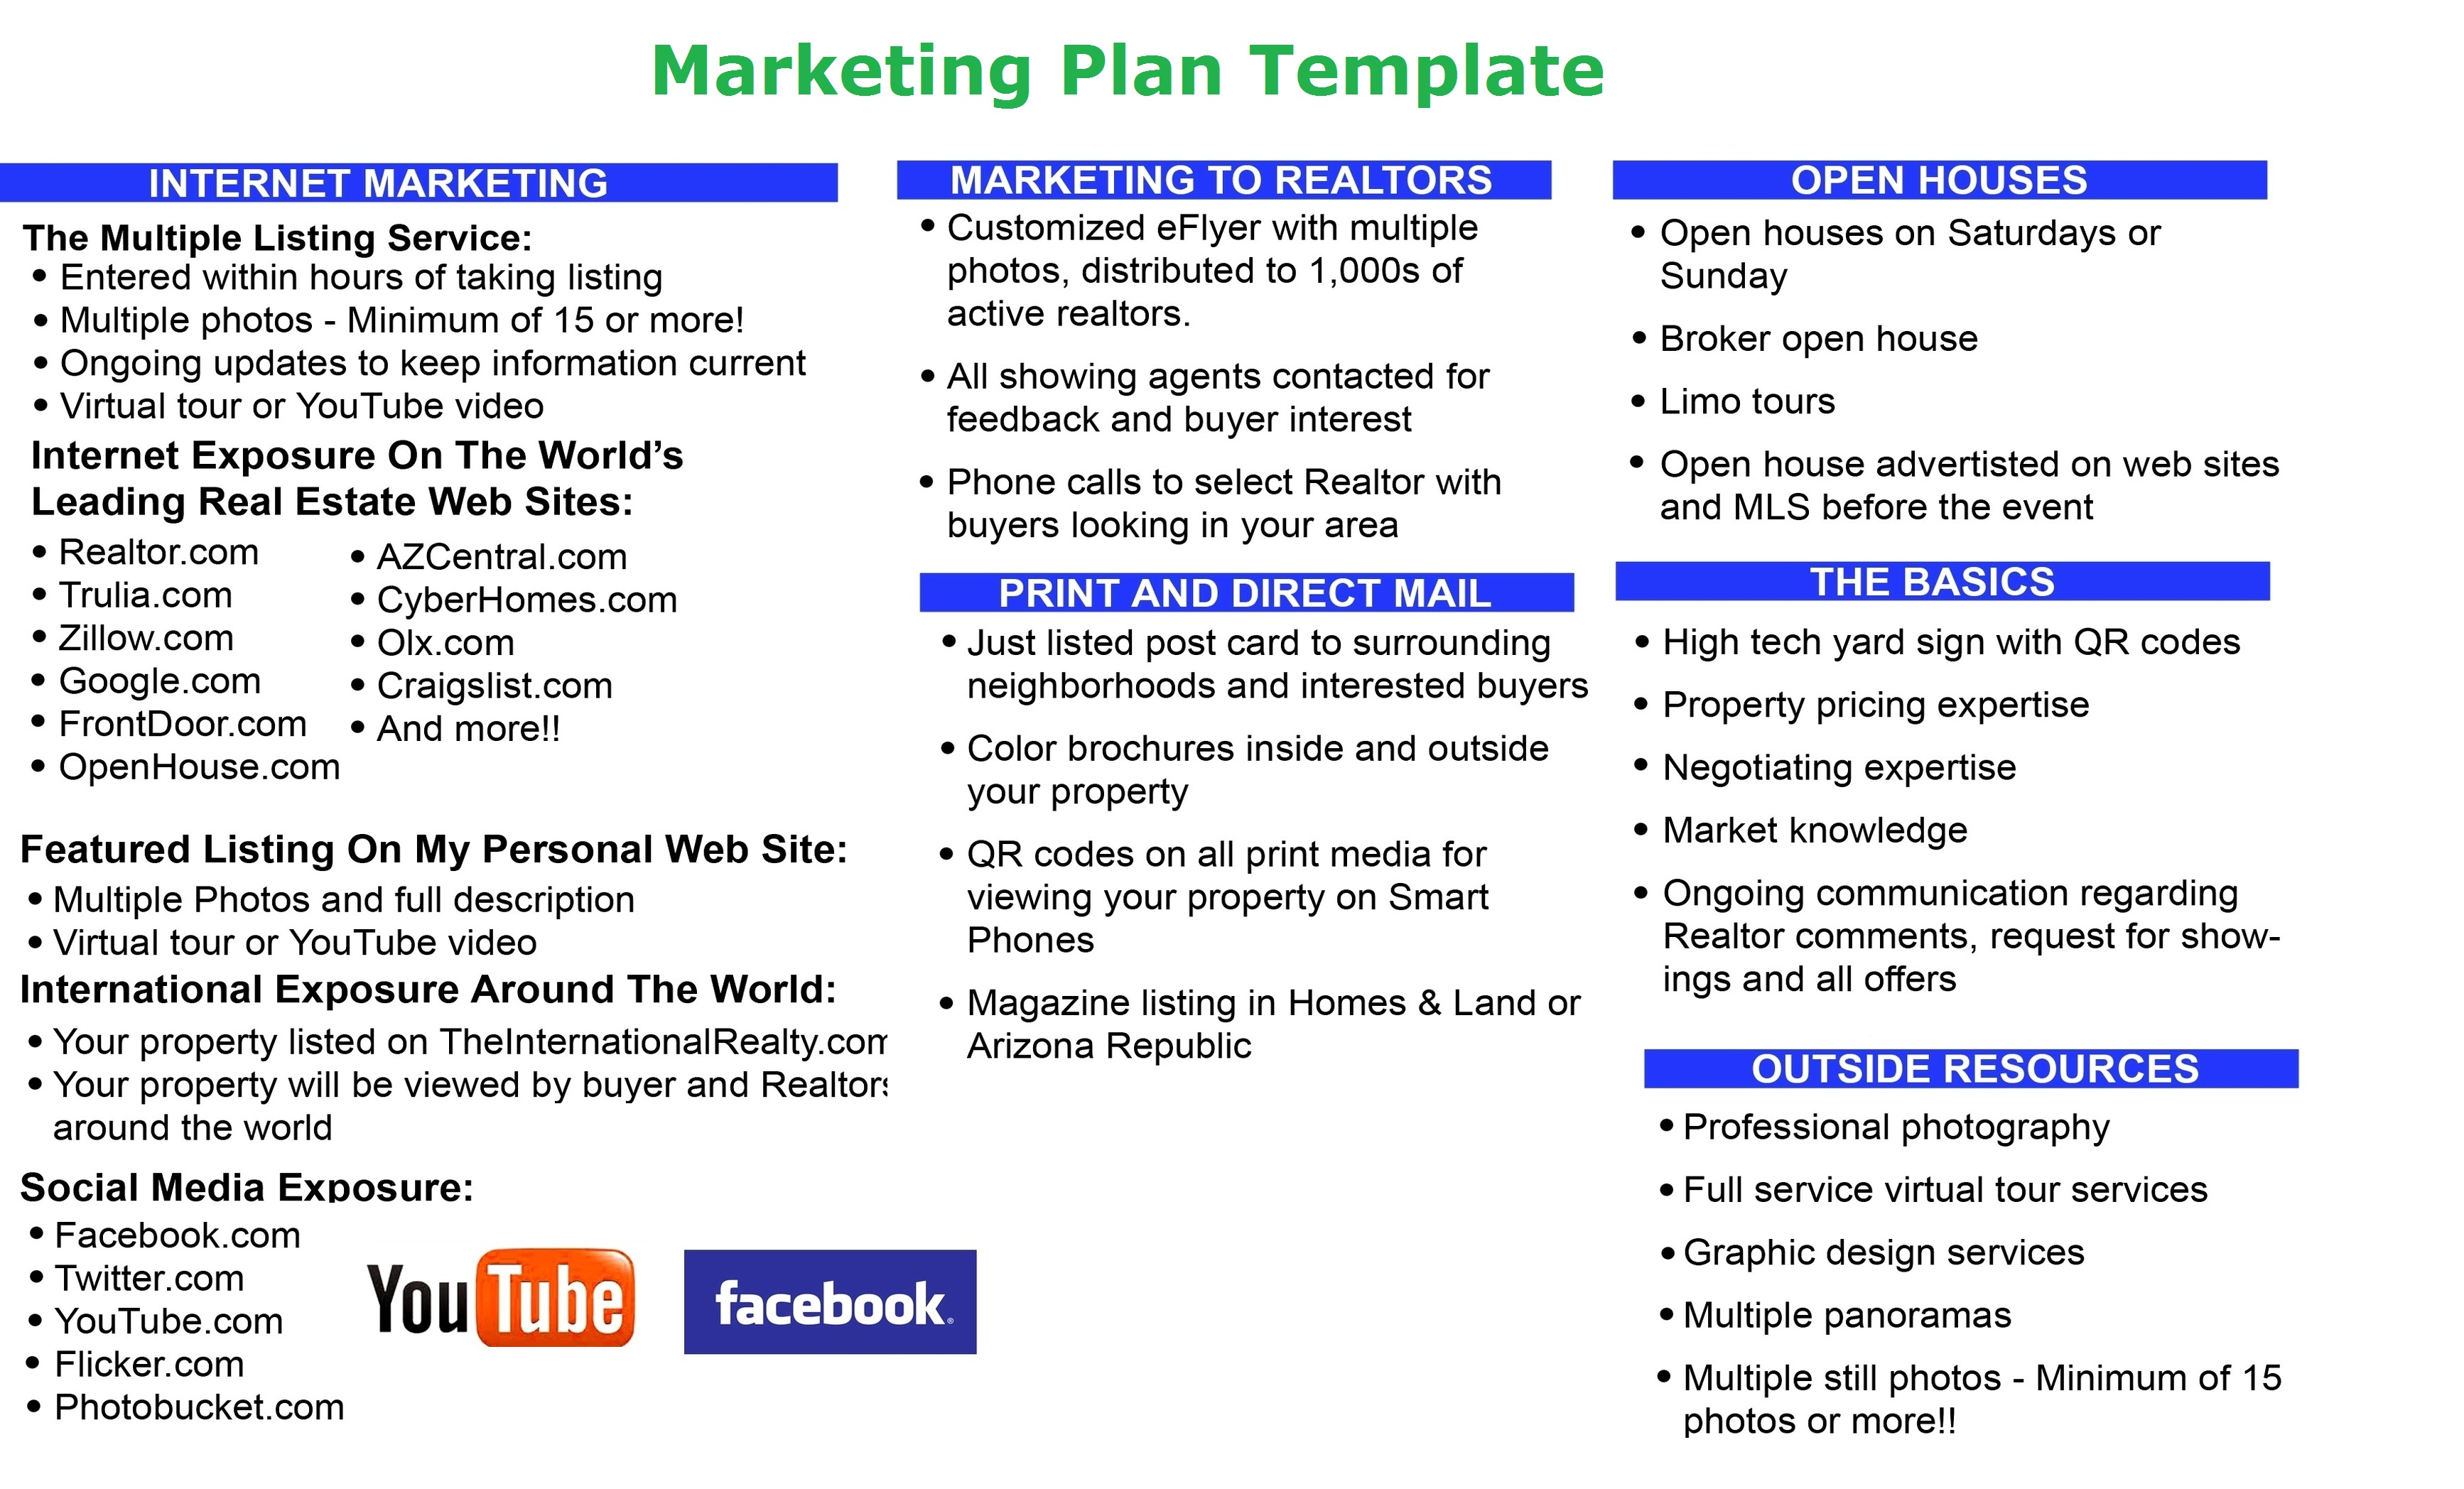 Marketing plan example business diagrams frameworks models marketing plan maxwellsz